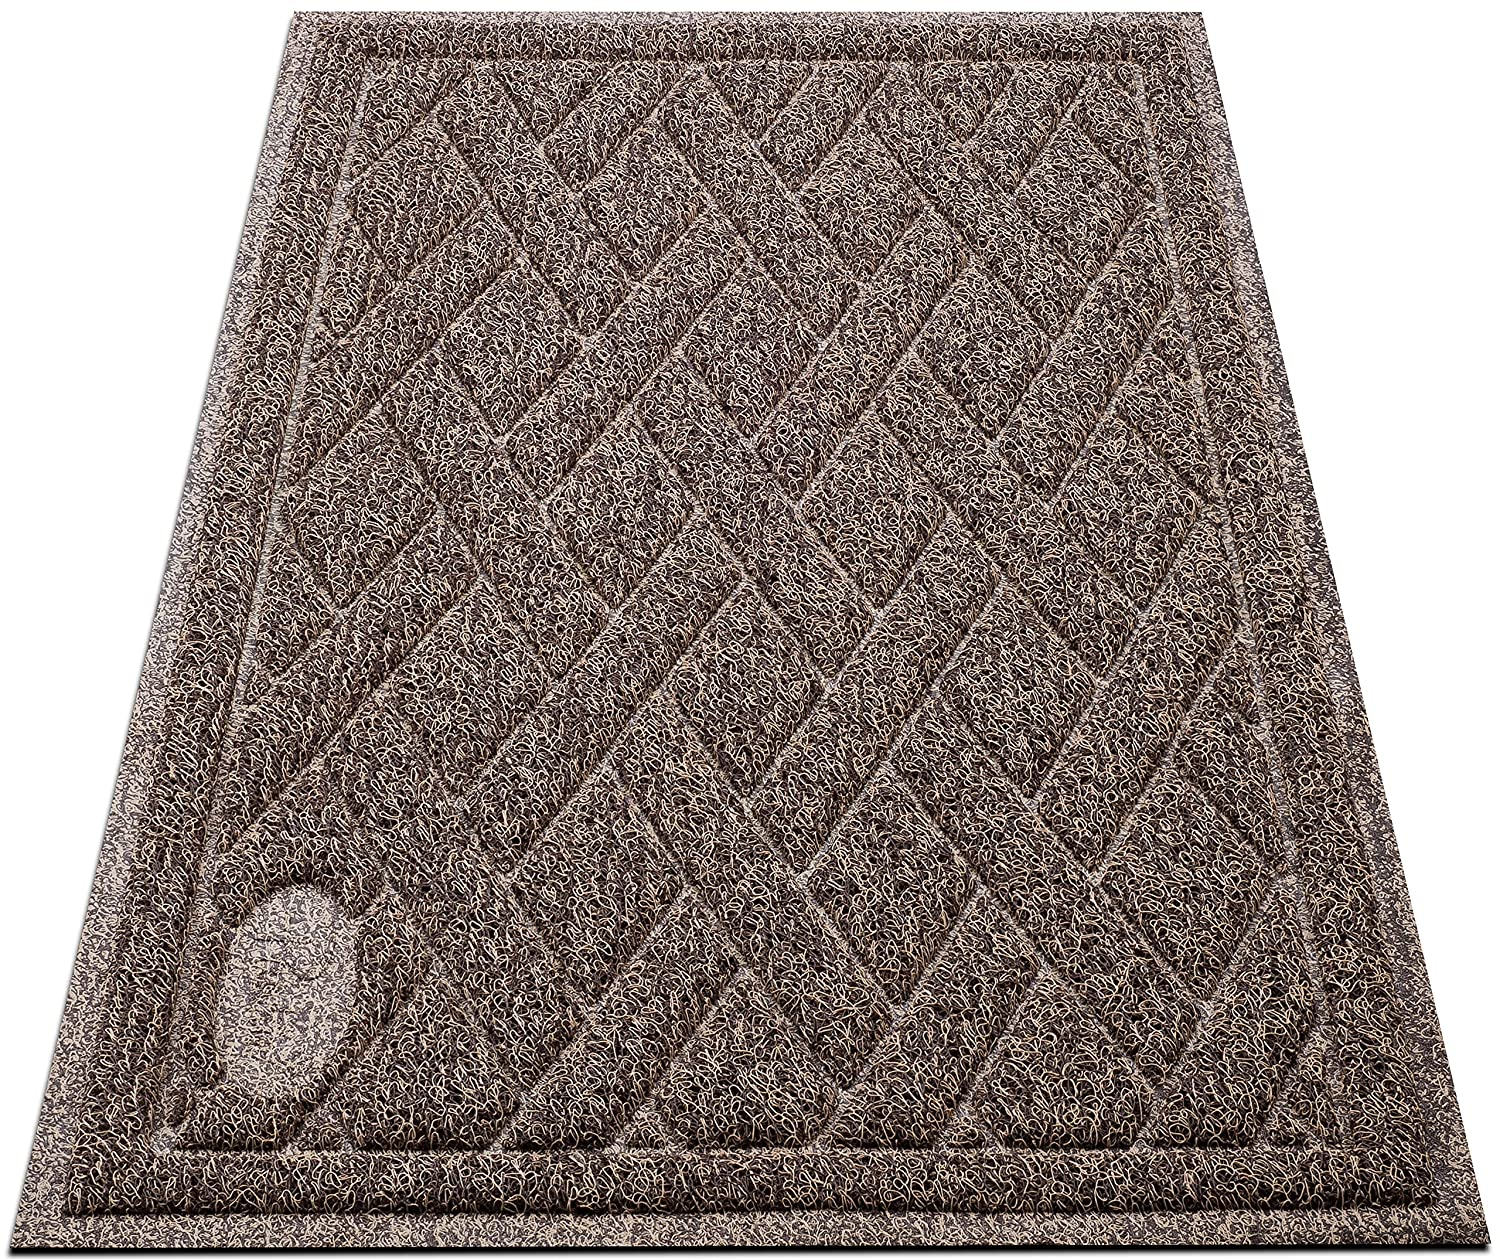 Pawkin Cat Litter Mat Patented Design with Litter Camouflage Extra Large Durable Easy to Clean Soft Fits Under Litter Box Litter Free Floors